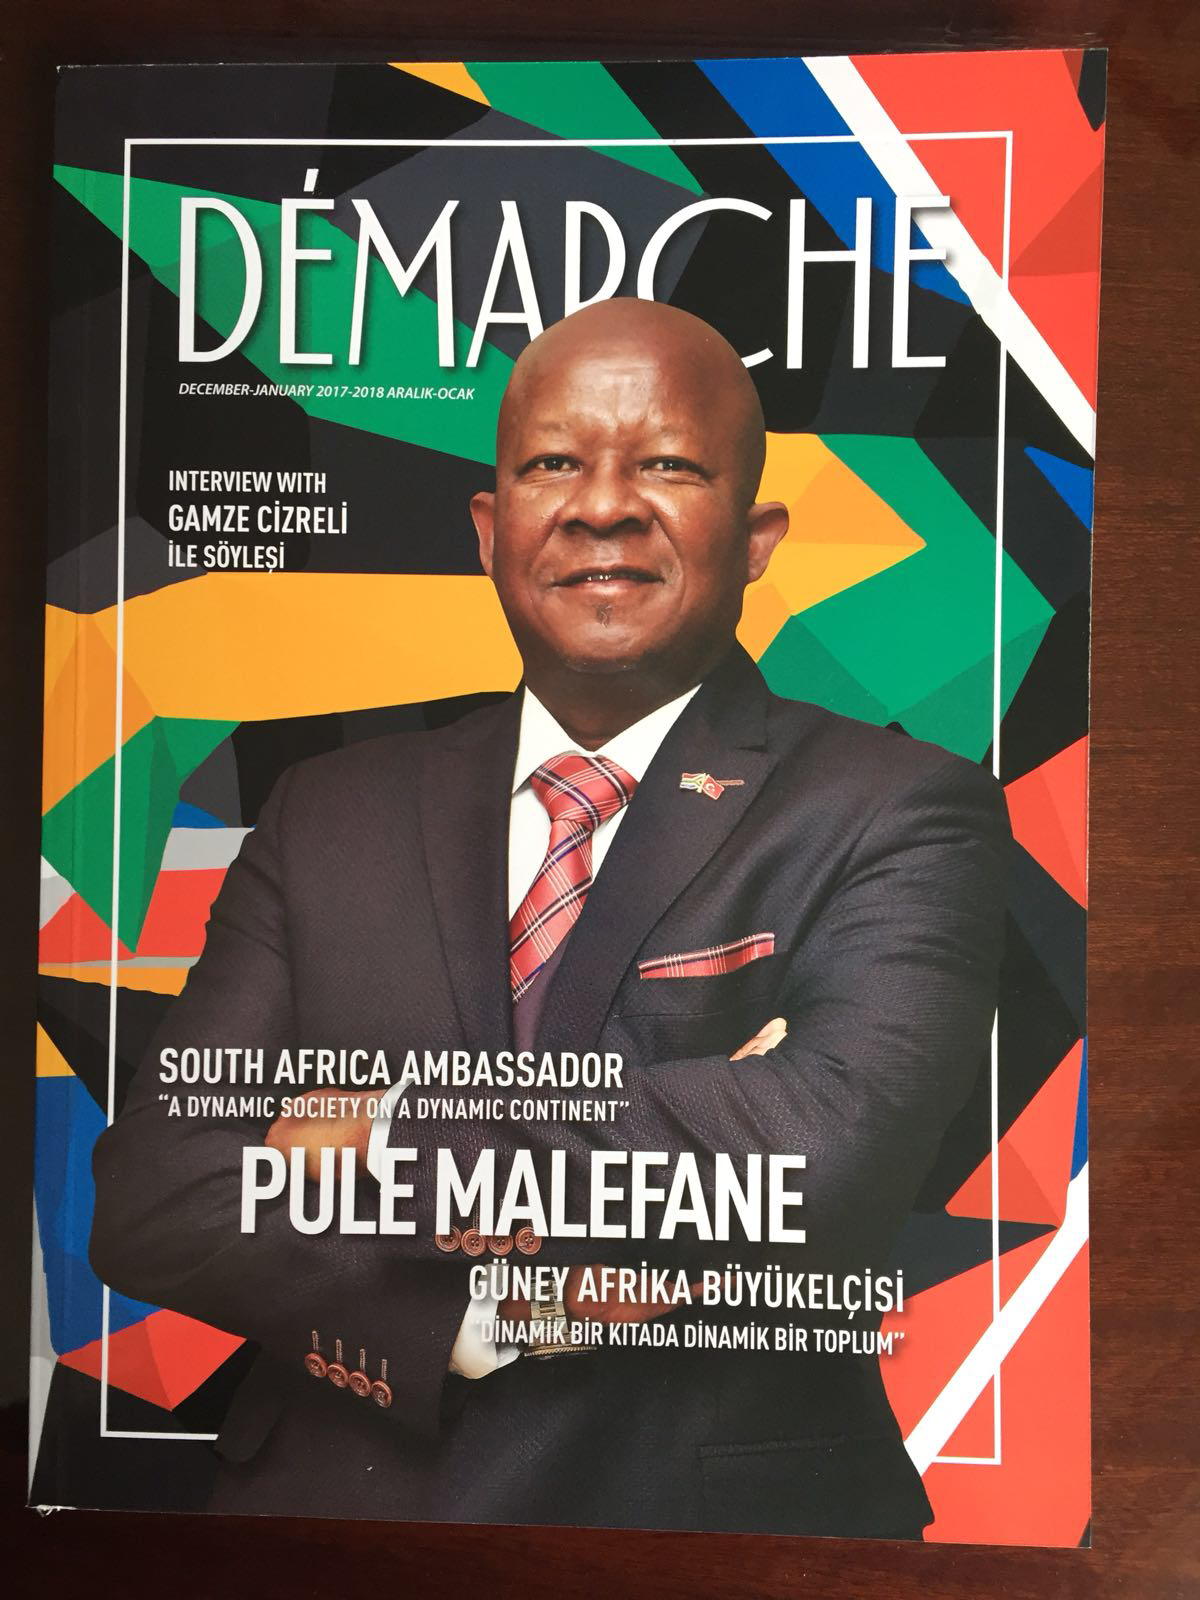 Demarche Cover